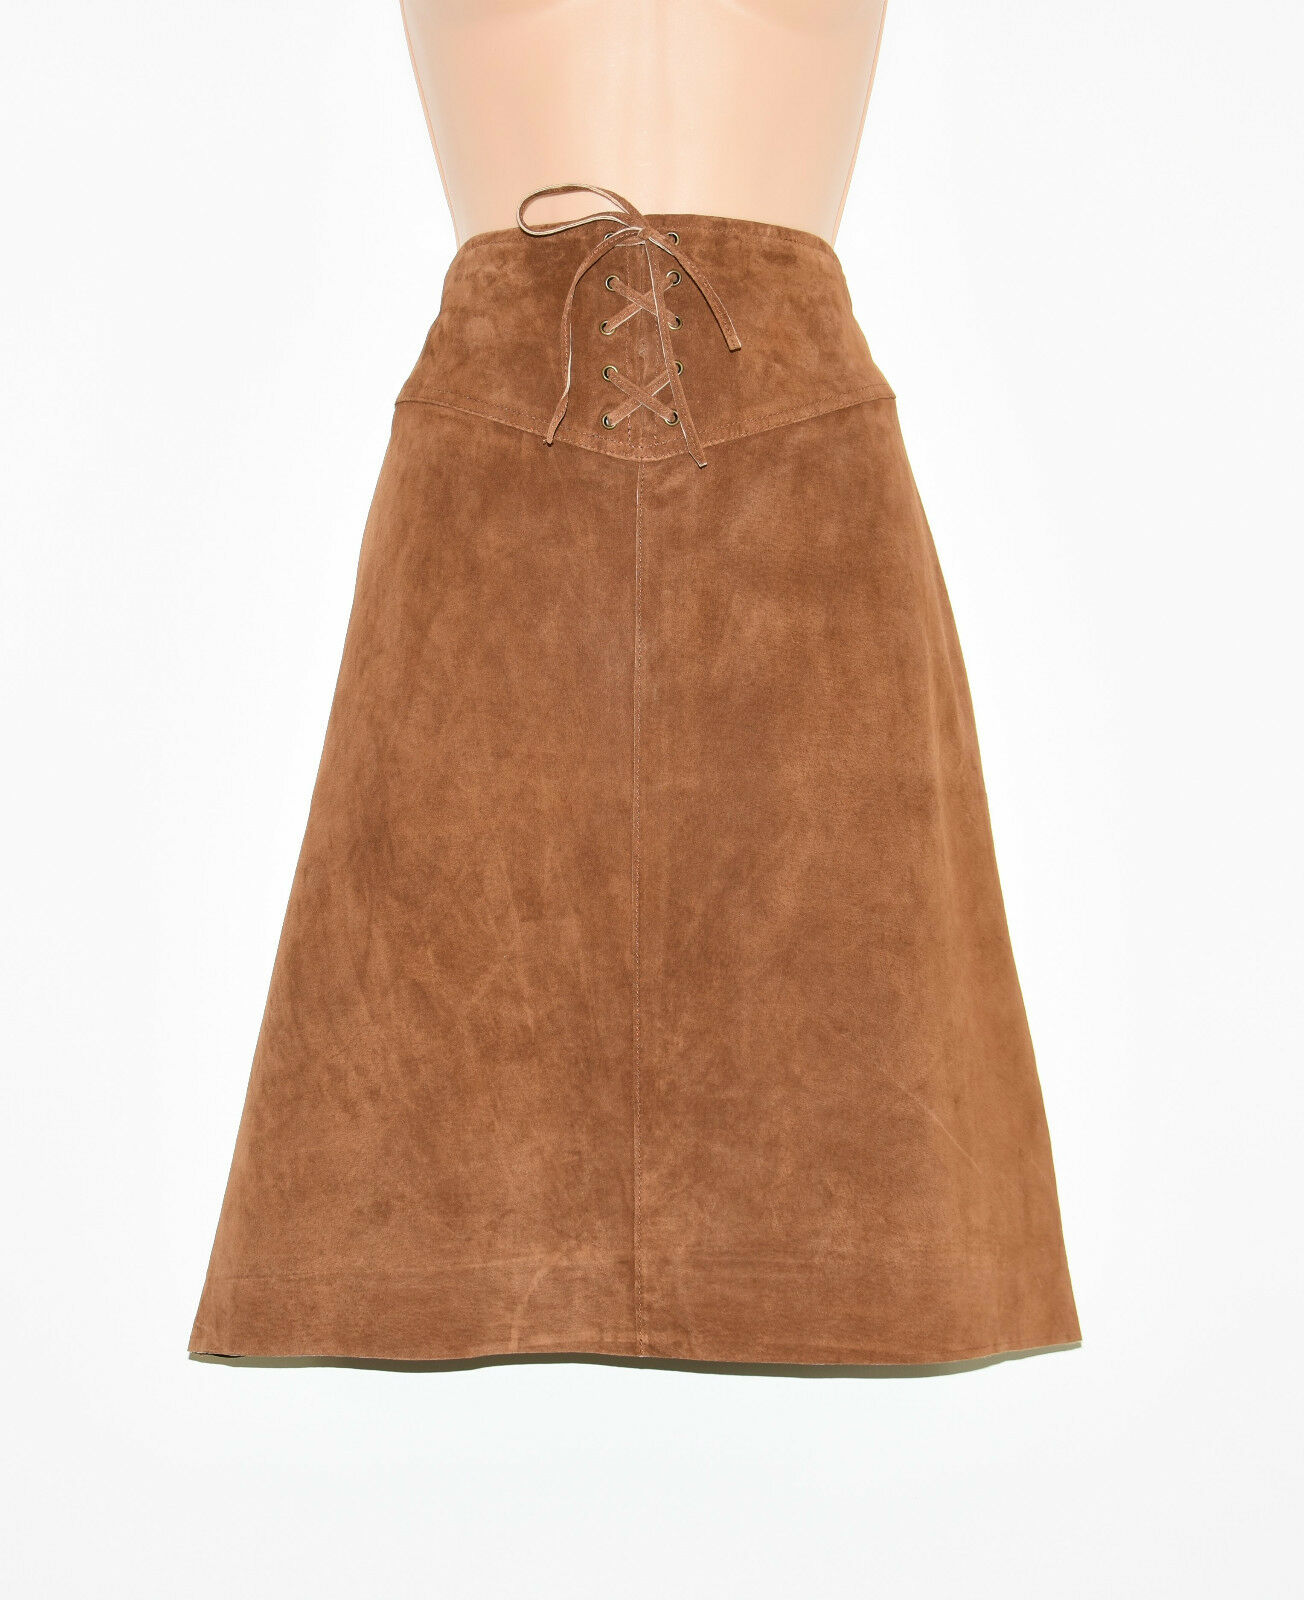 Brown Real Leather STACCATO Straight Pencil Knee Length Skirt Size UK12 L22